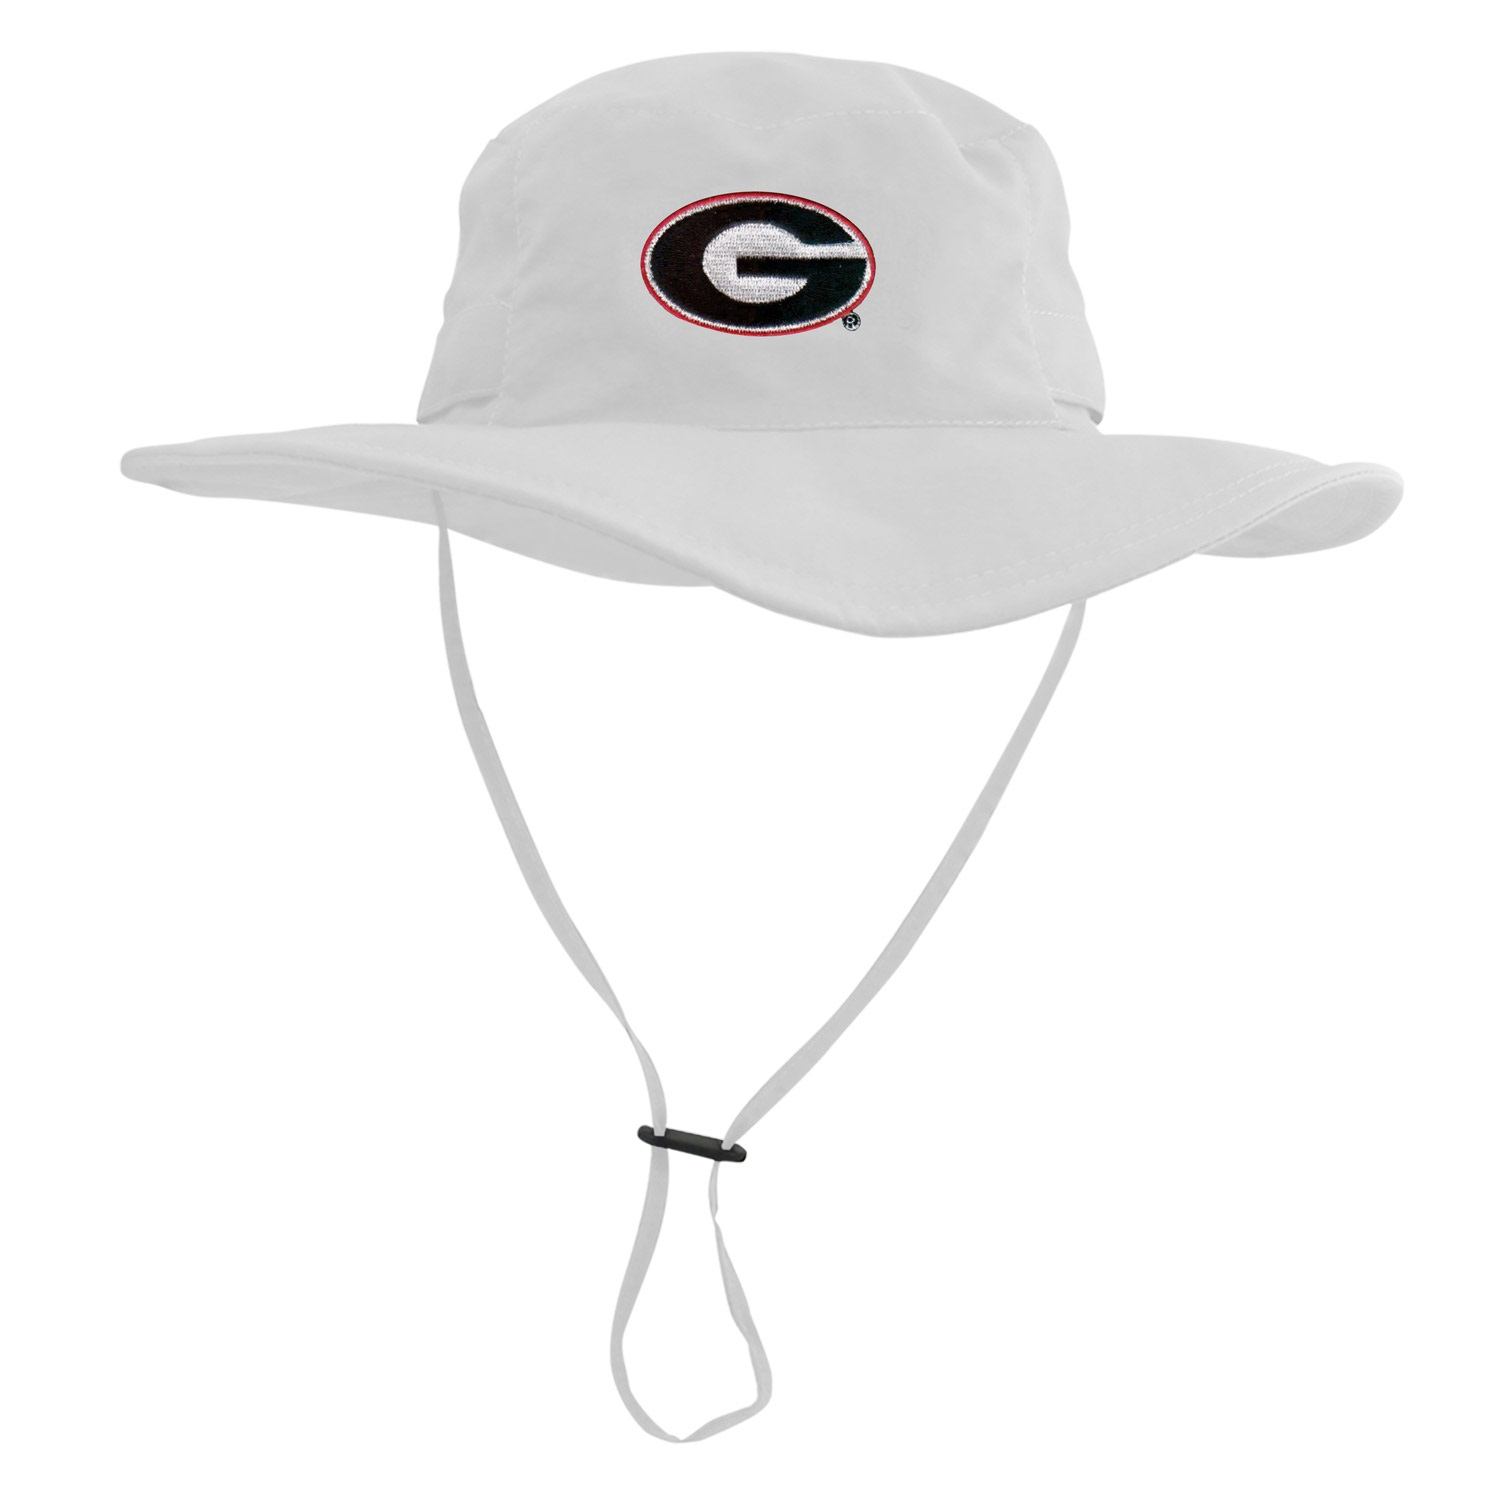 University of Georgia Boonie Sun Hat 646648073336  73b2dabaa6a